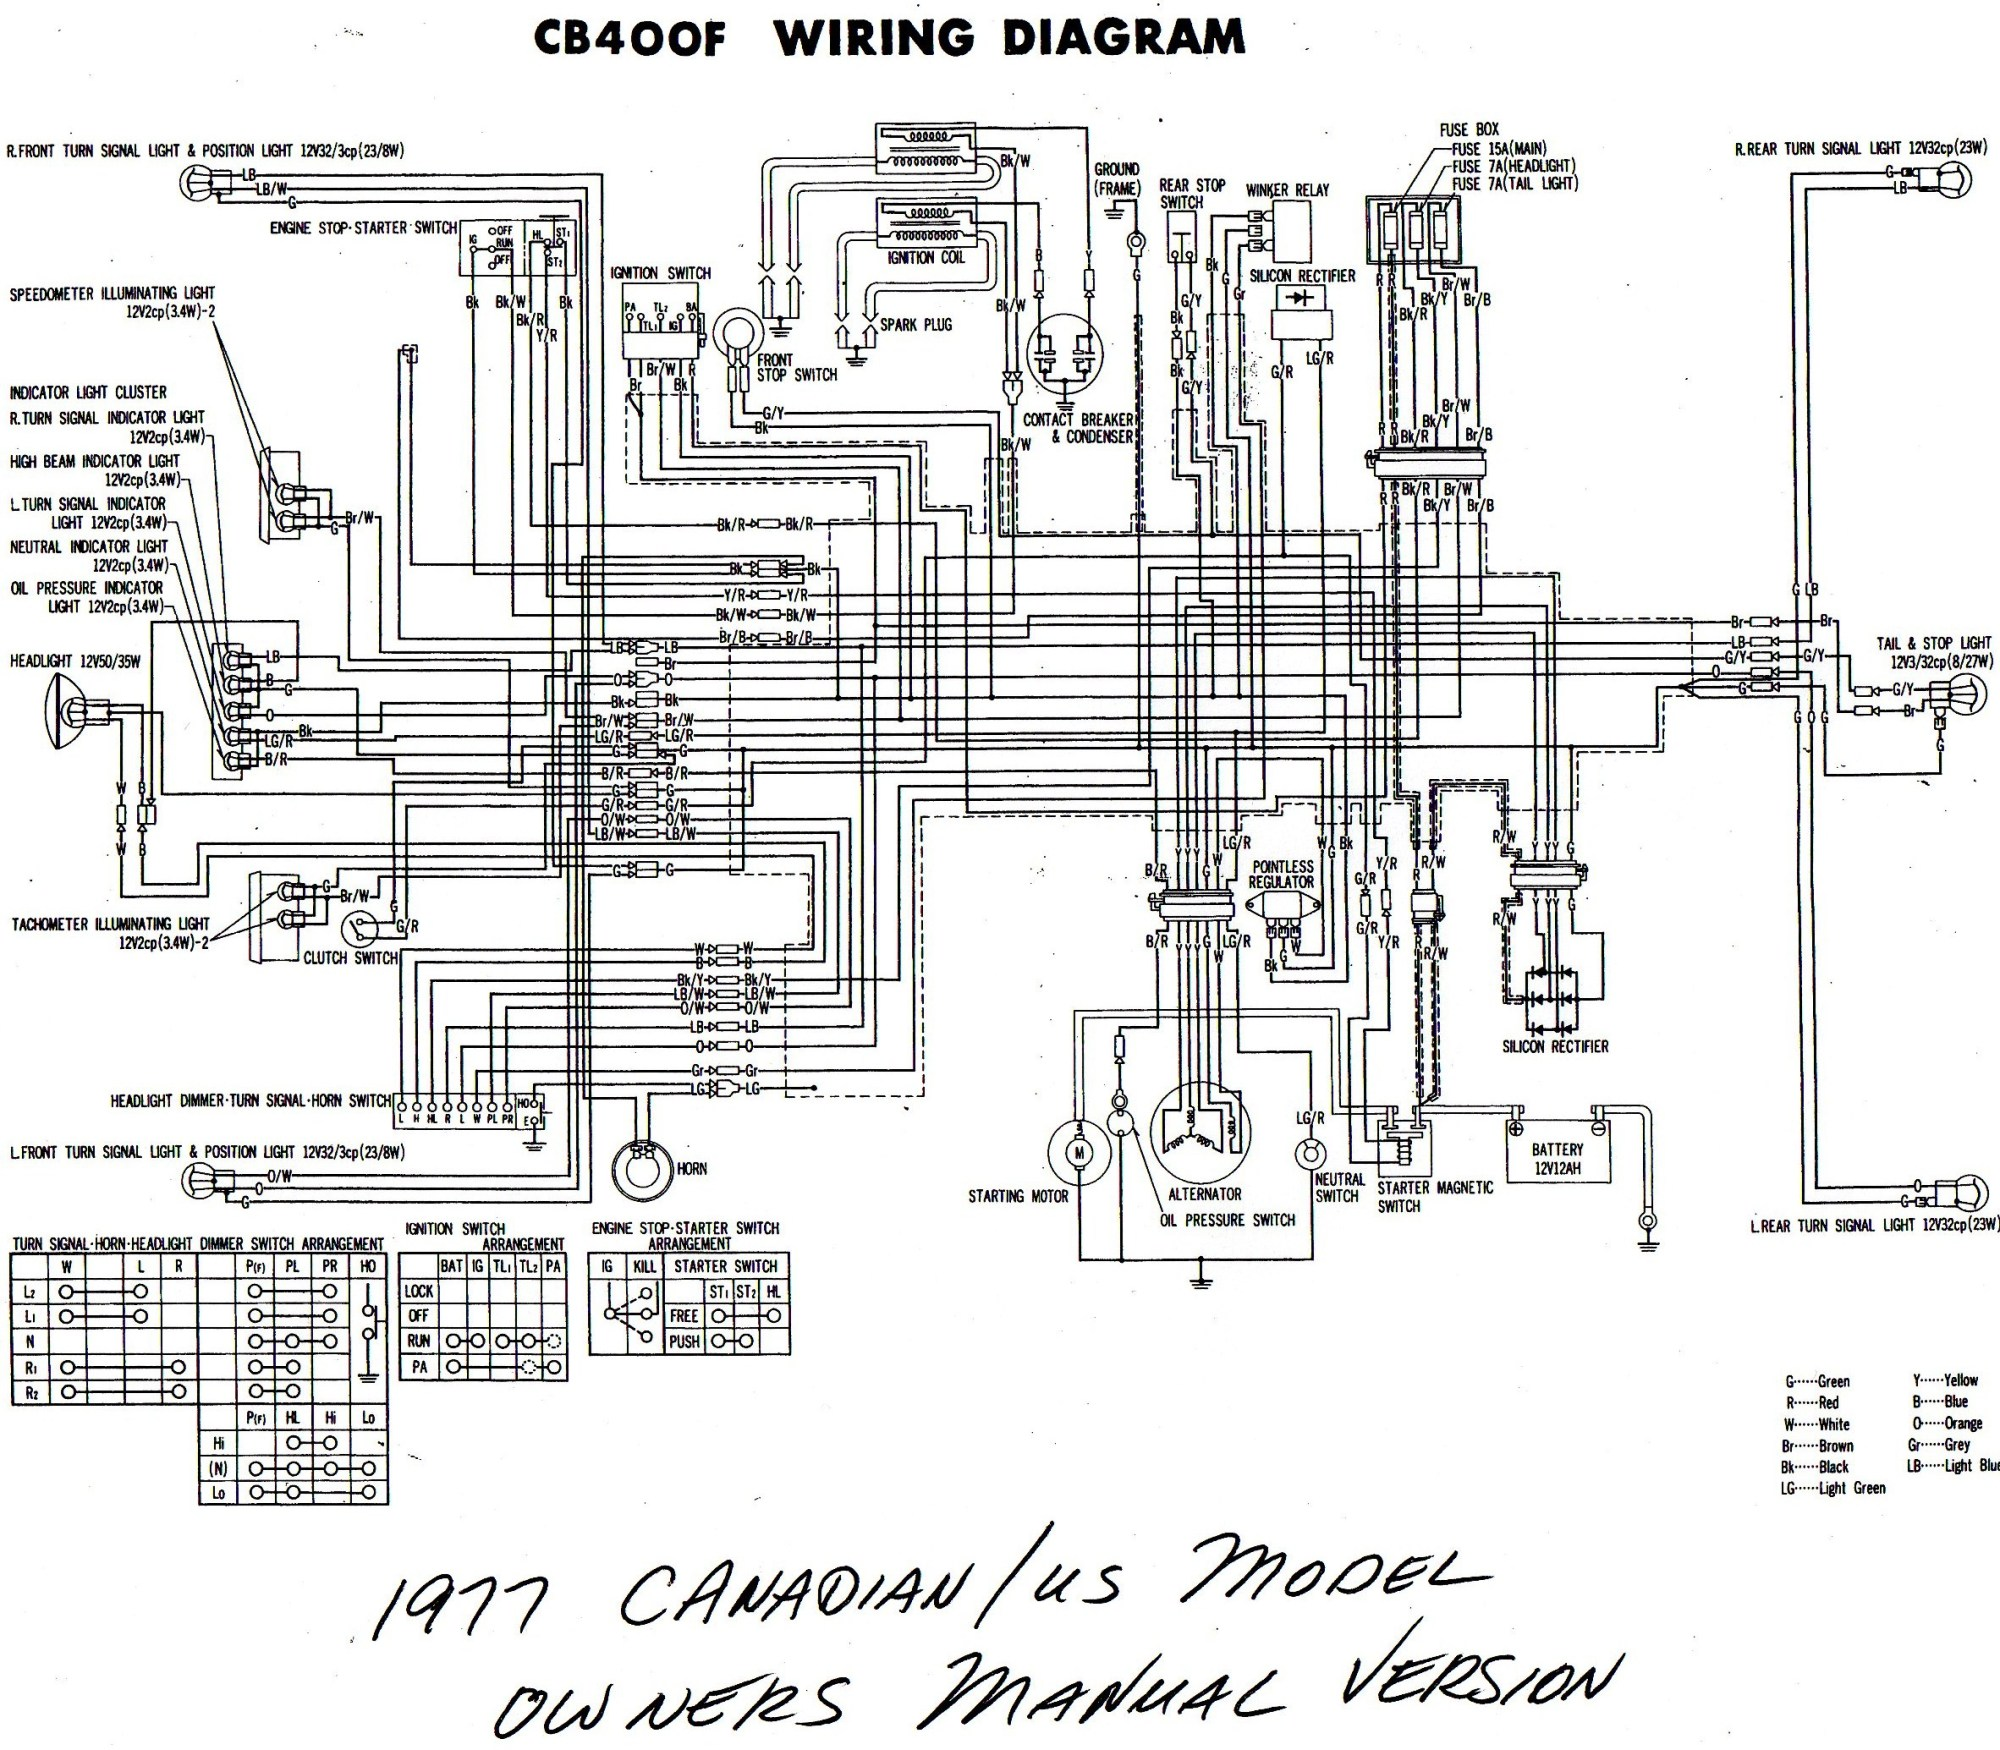 hight resolution of  1977 cb400f wiring diagram us canada b w